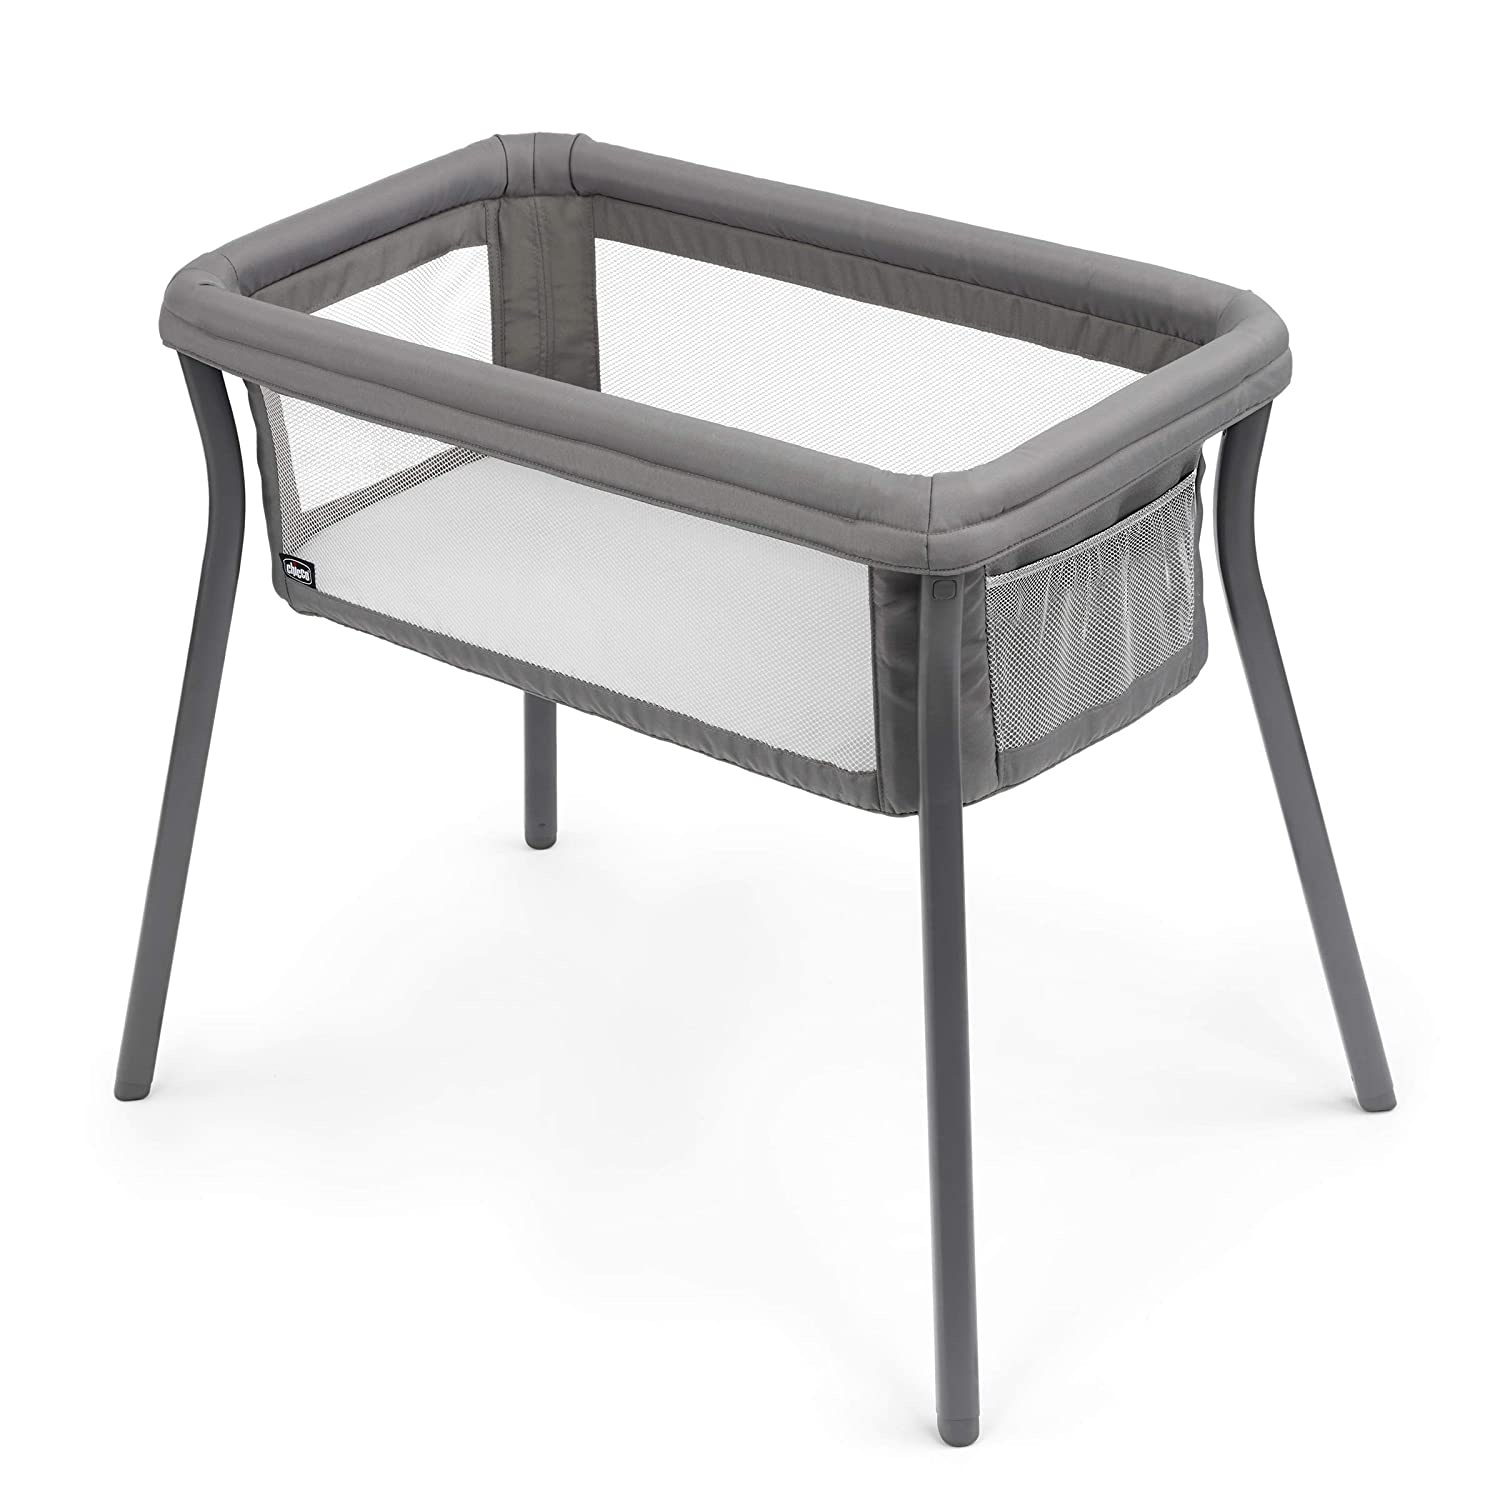 Chicco LullaGo Anywhere Portable Bassinet - Sandstone, Grey